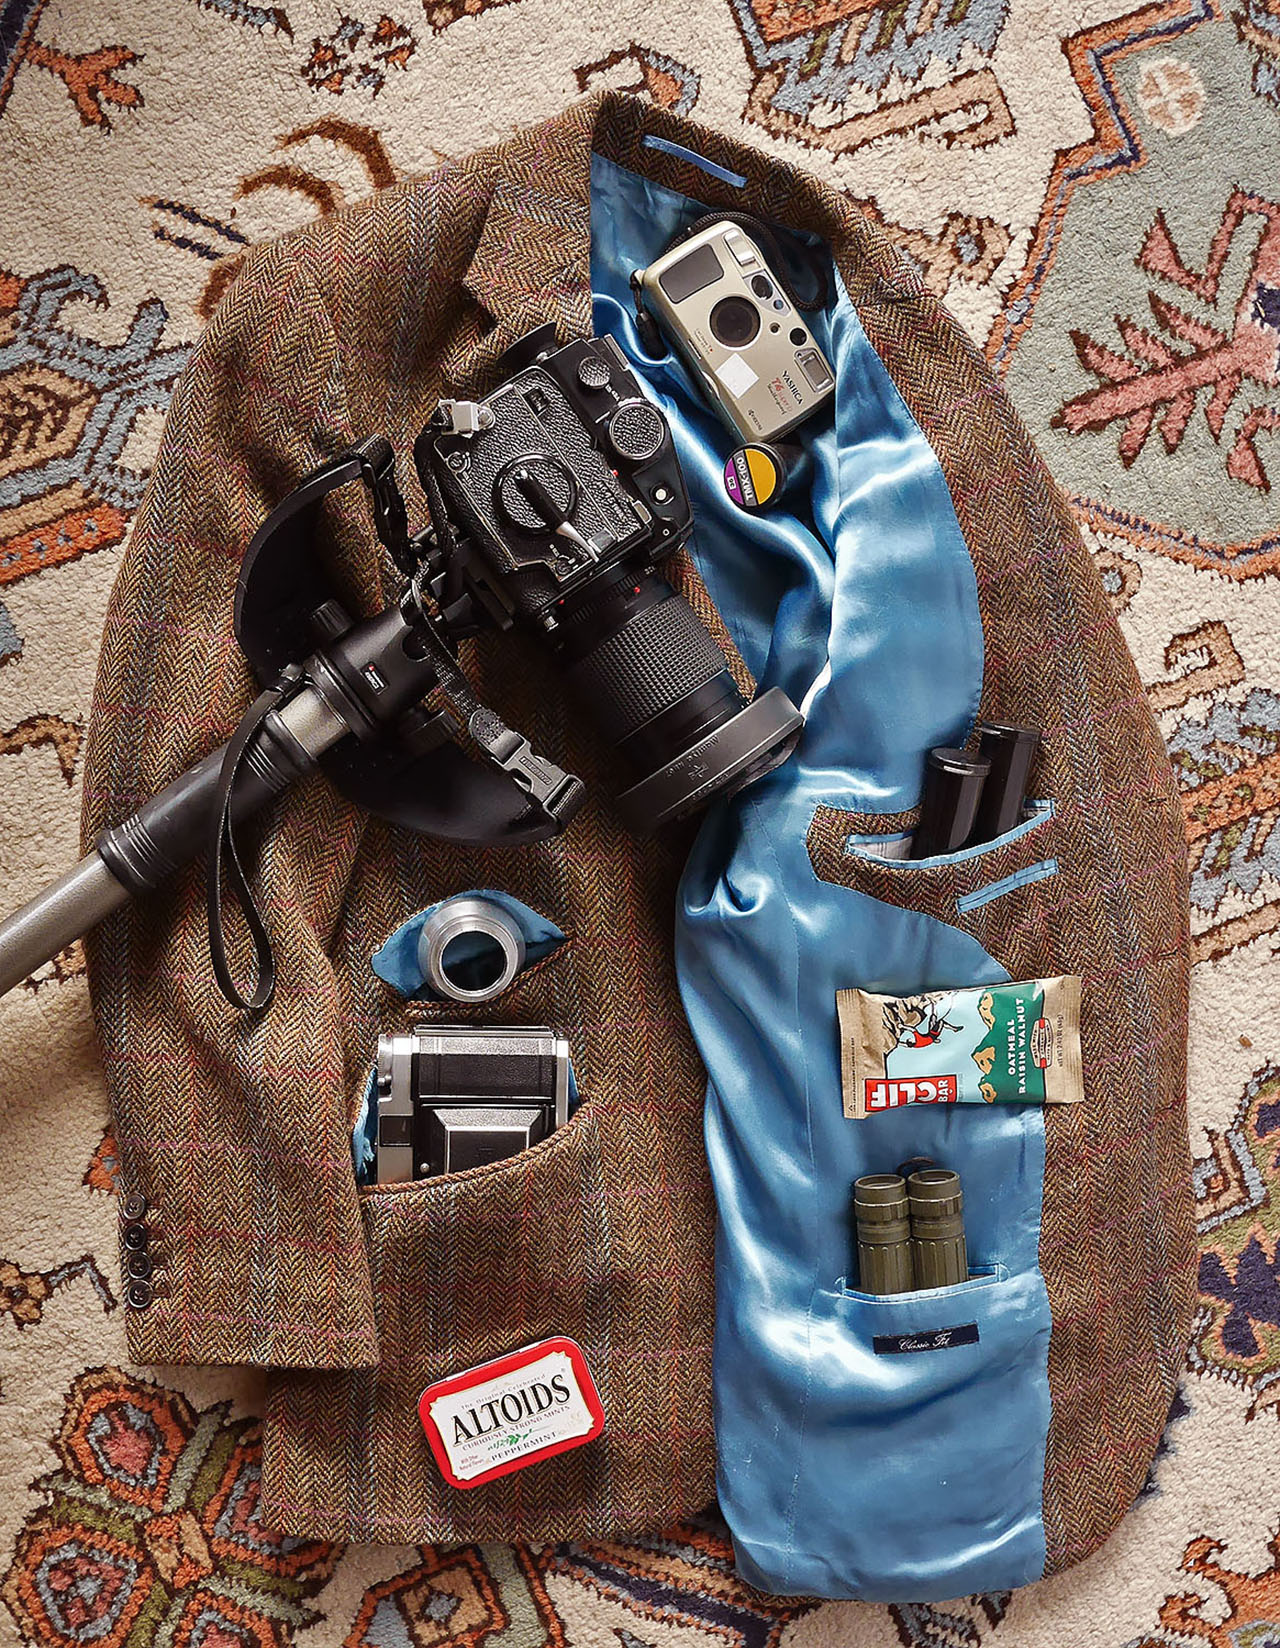 In your bag: 1473 – Russell Young